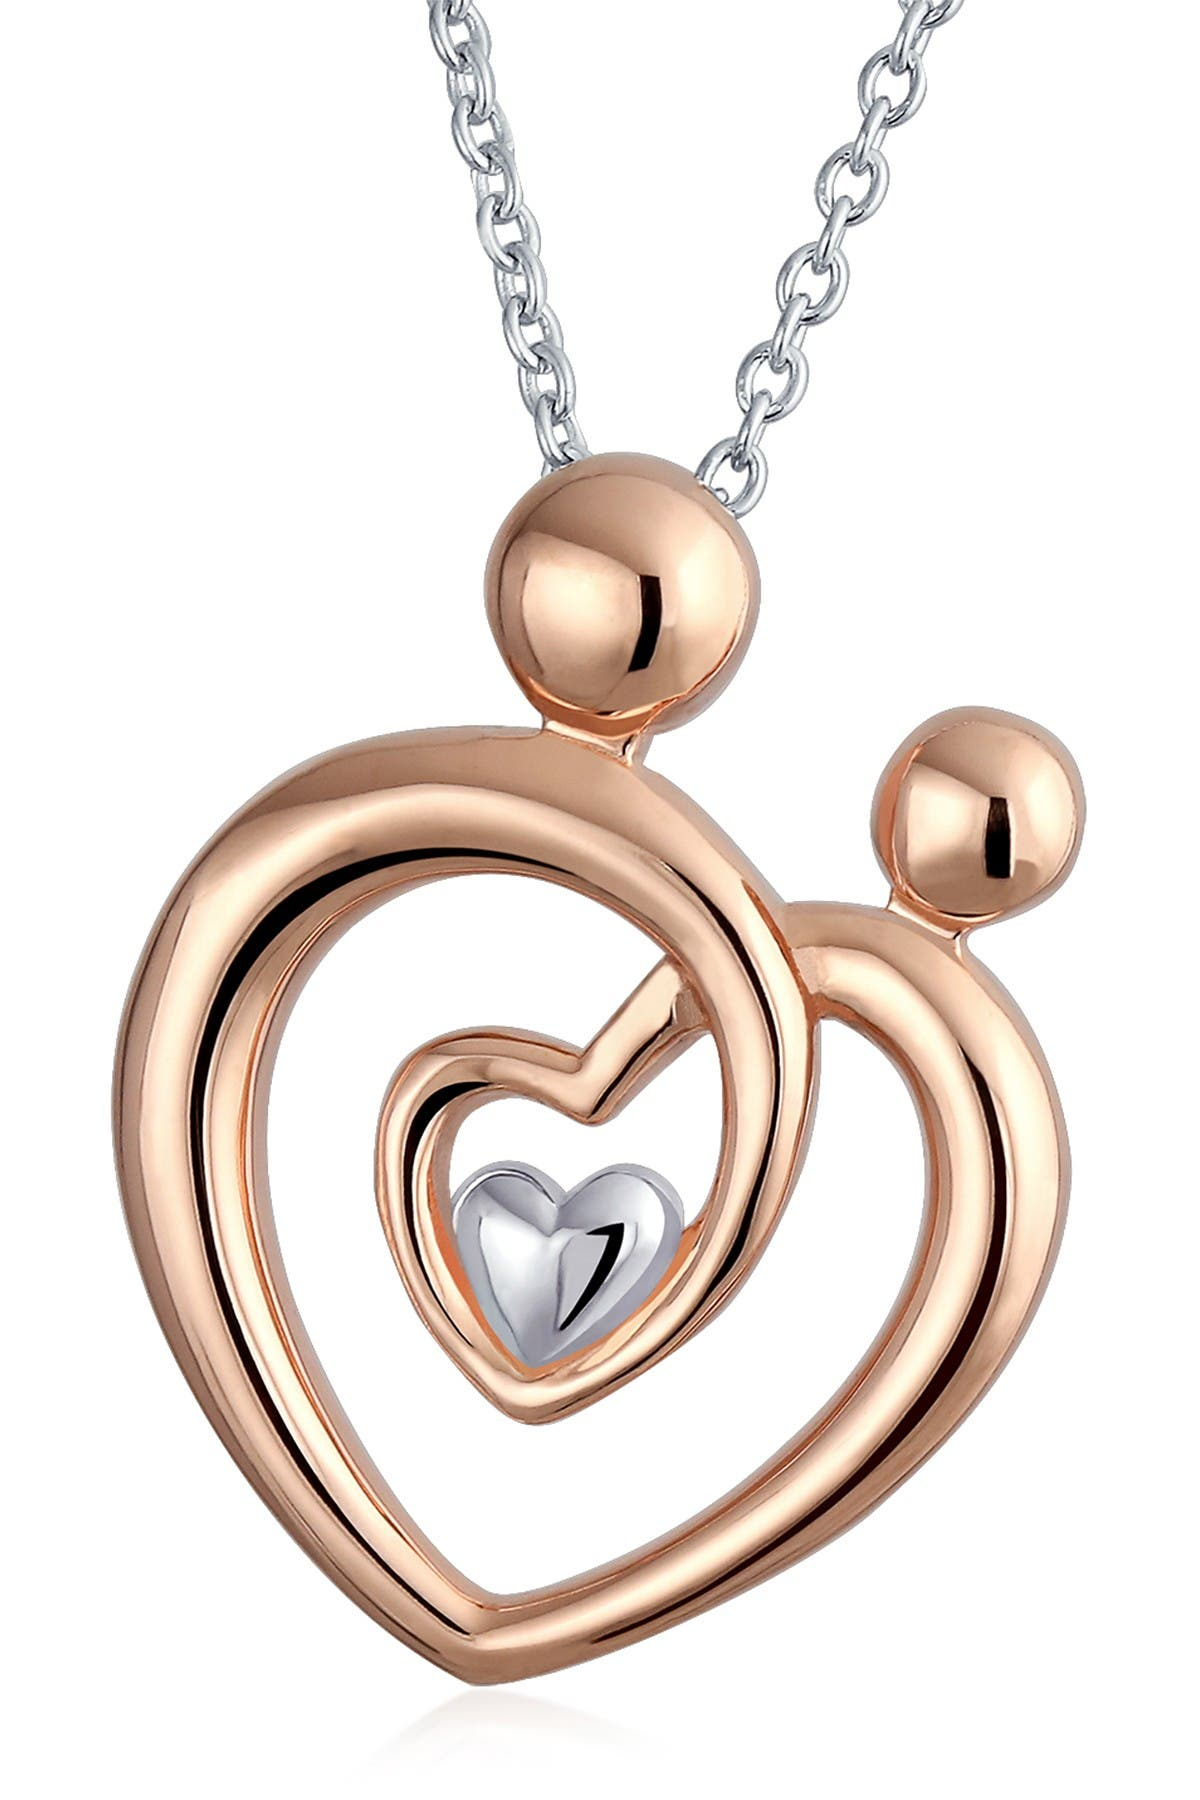 Mom With Heart Pendant Necklace in 14K Yellow and Rose Satin Gold